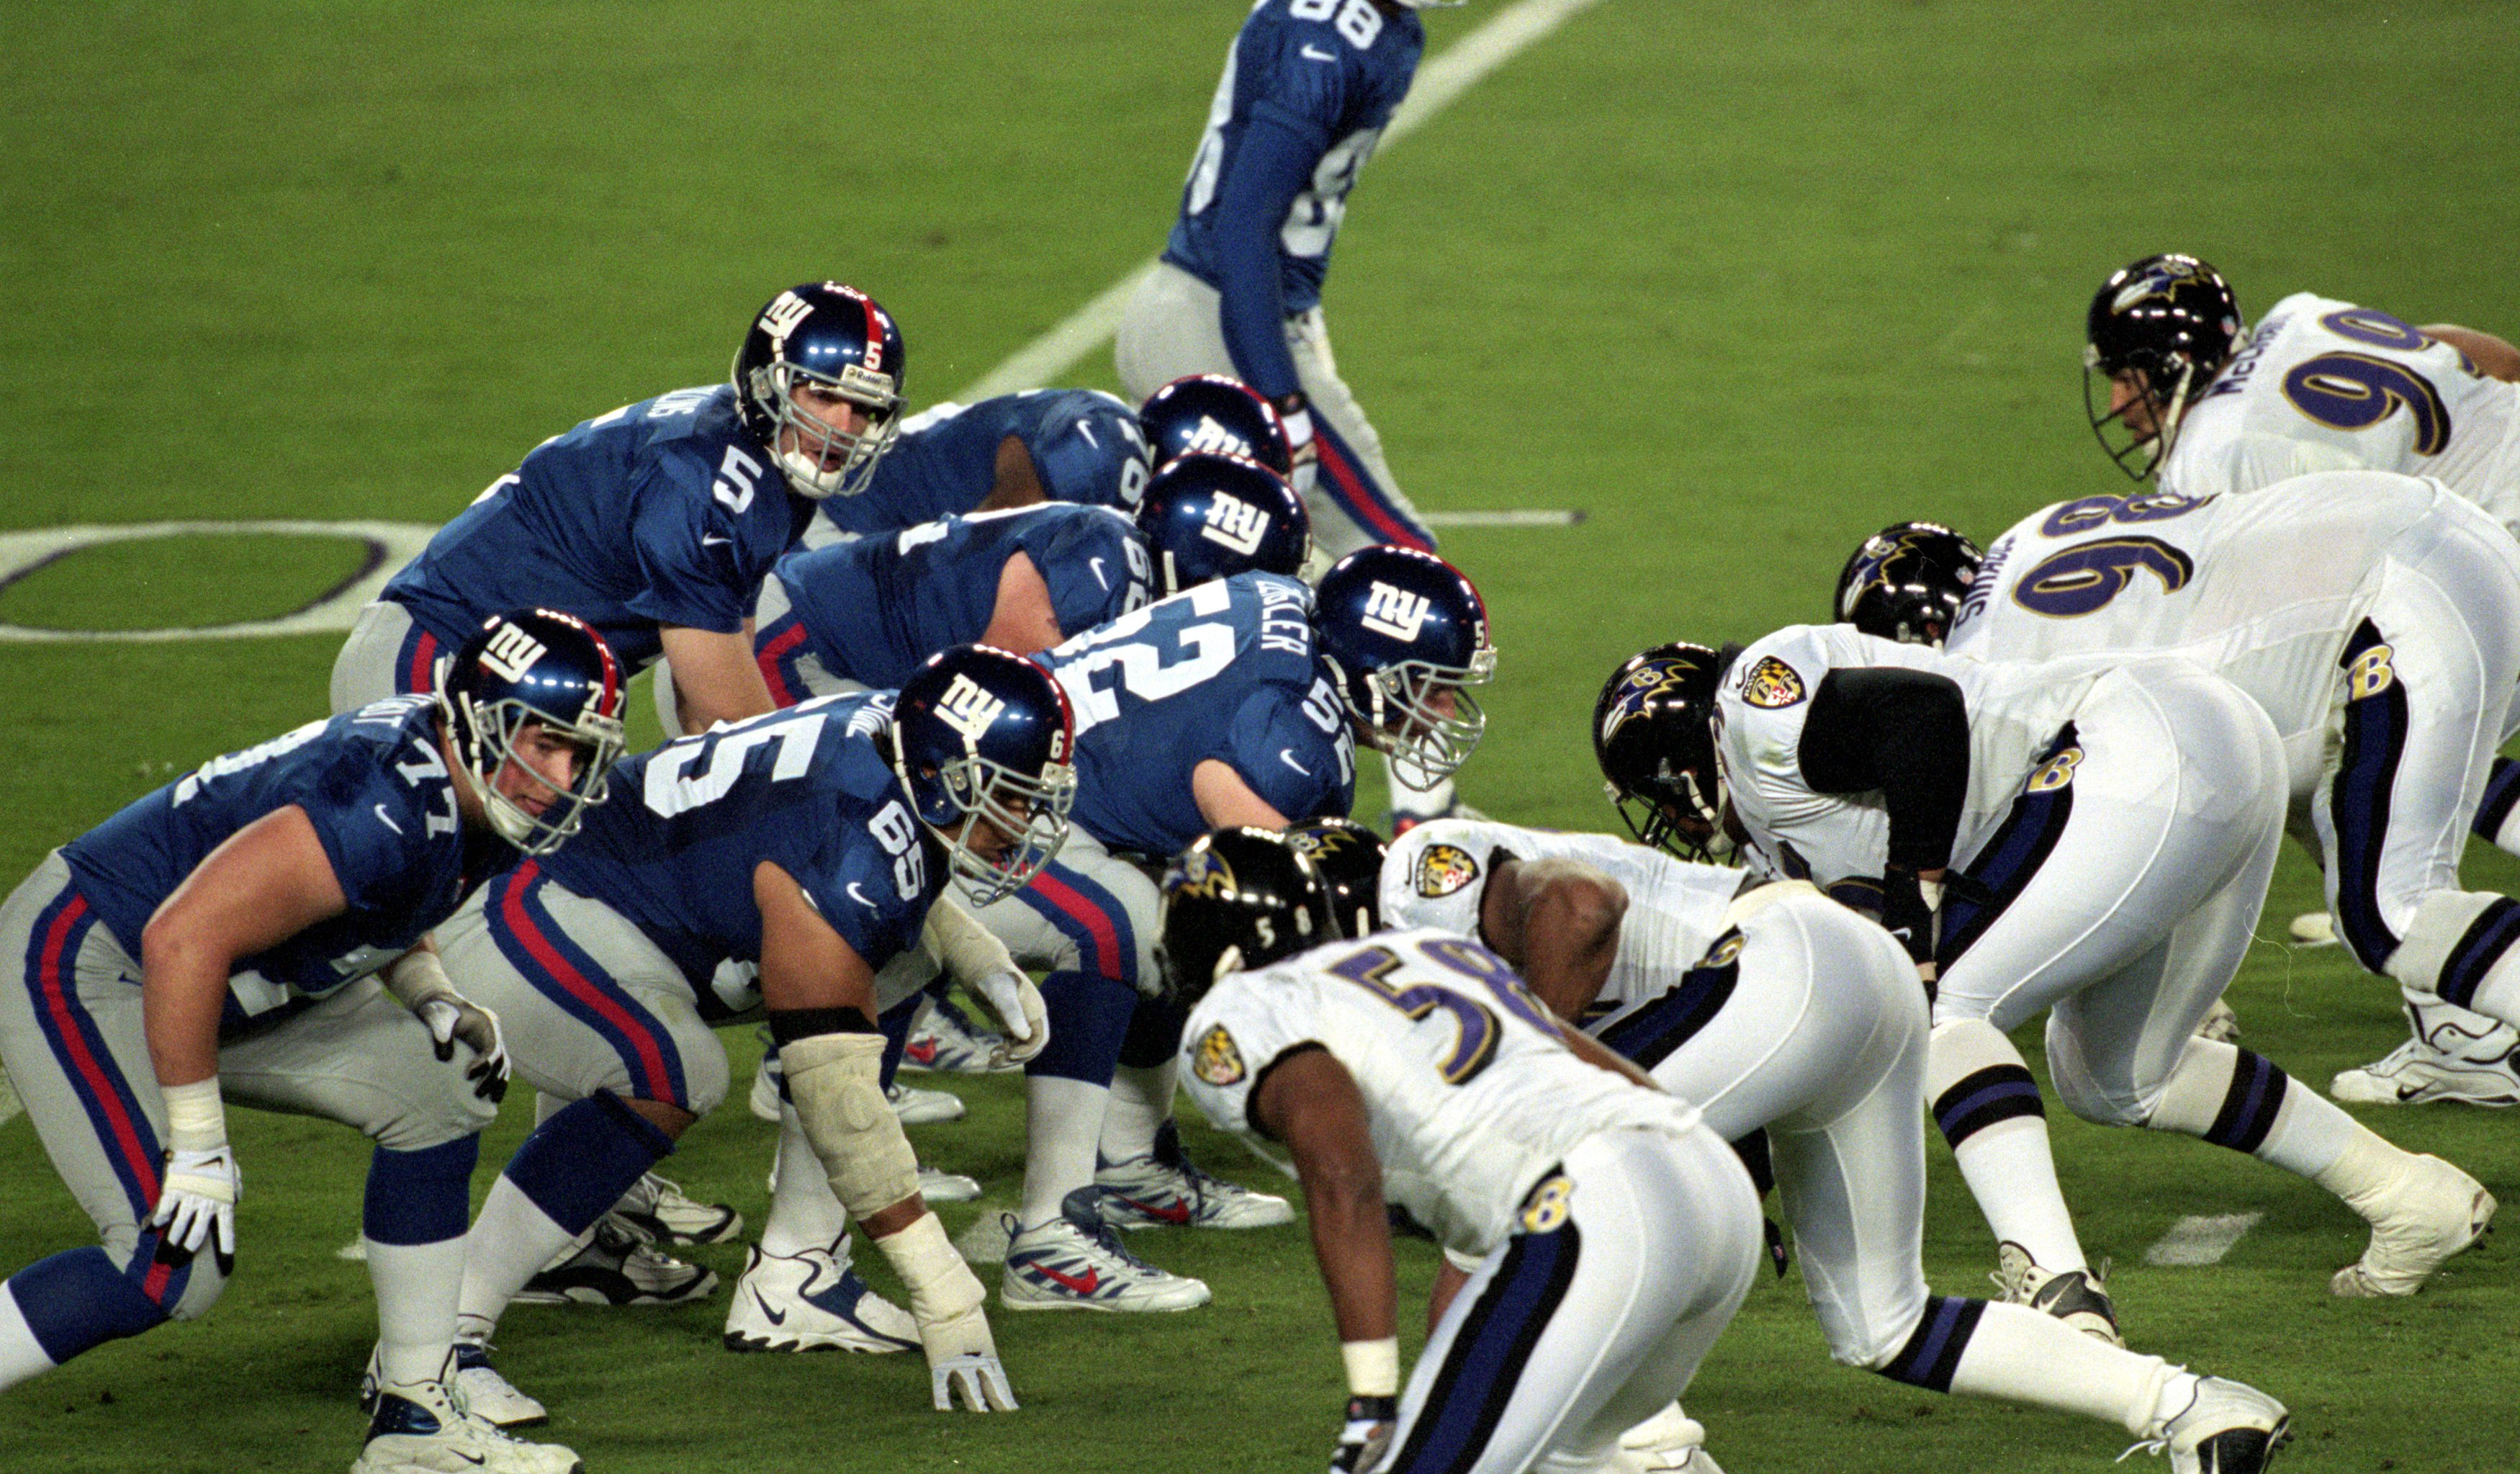 Kerry Collins #5